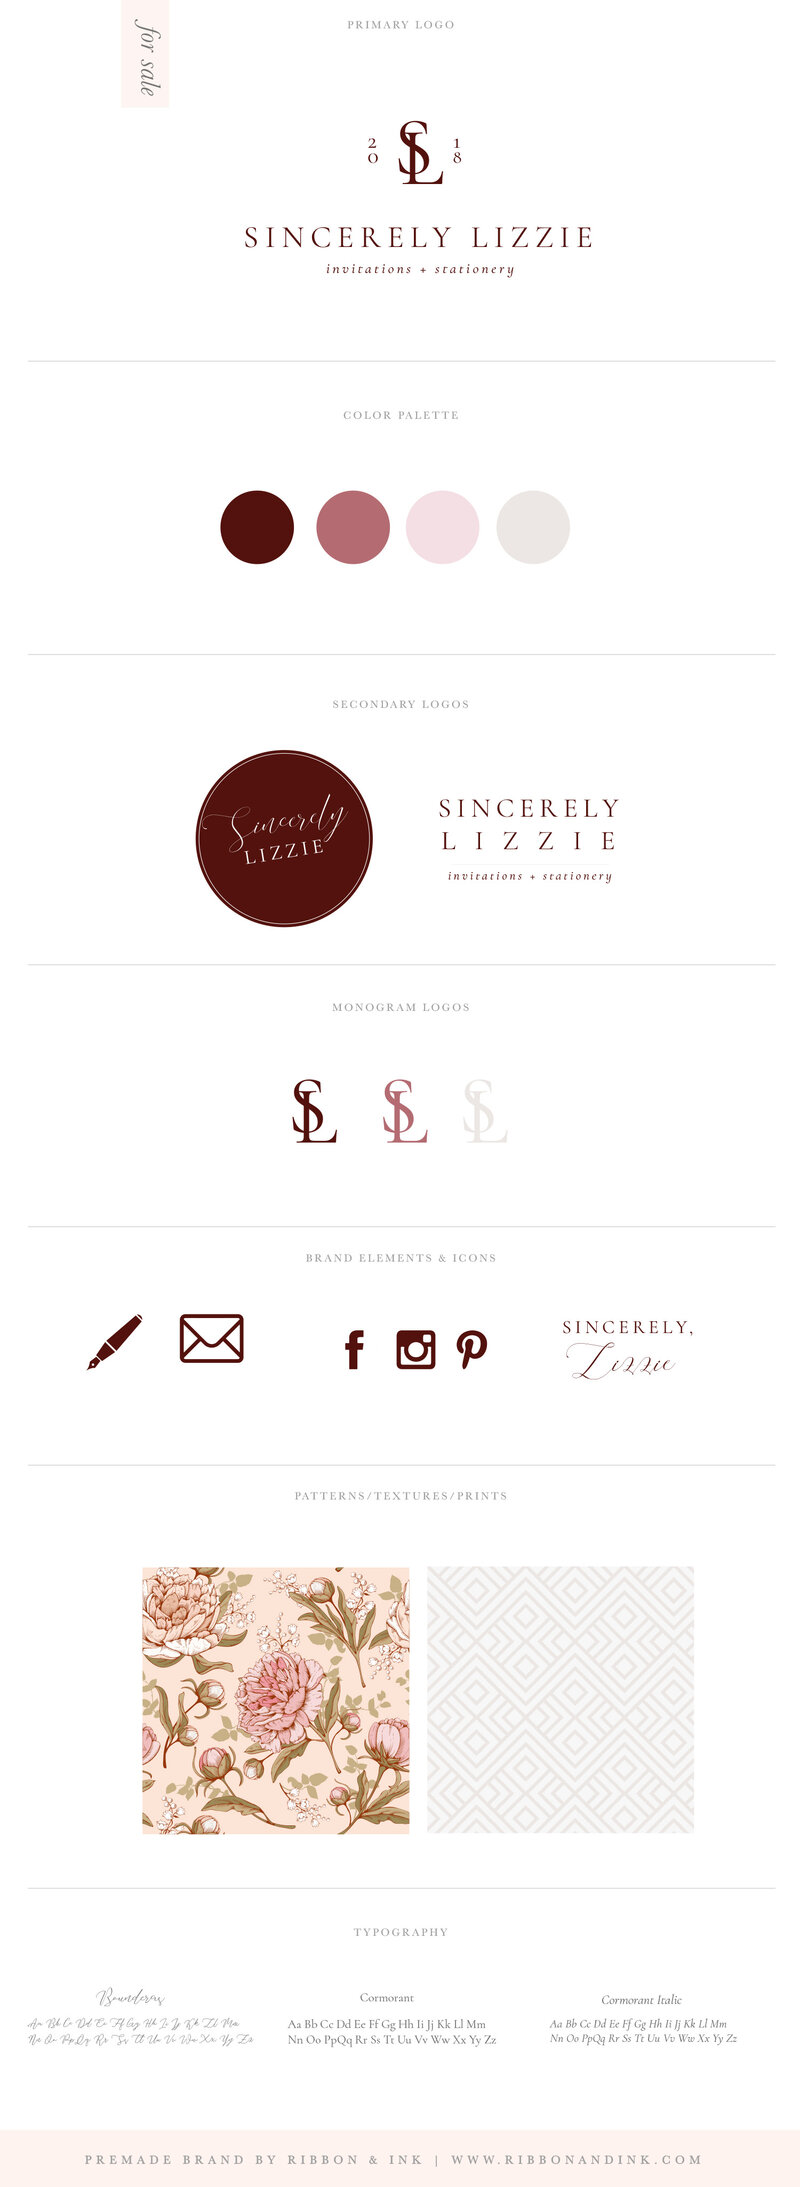 premade-branding-for-creatives-wedding-businesses-woman-business-wedding-photographer-brand-identity-for-sale-semi-custom-brand-kit-Lizzie_BrandBoard_v01_Tall